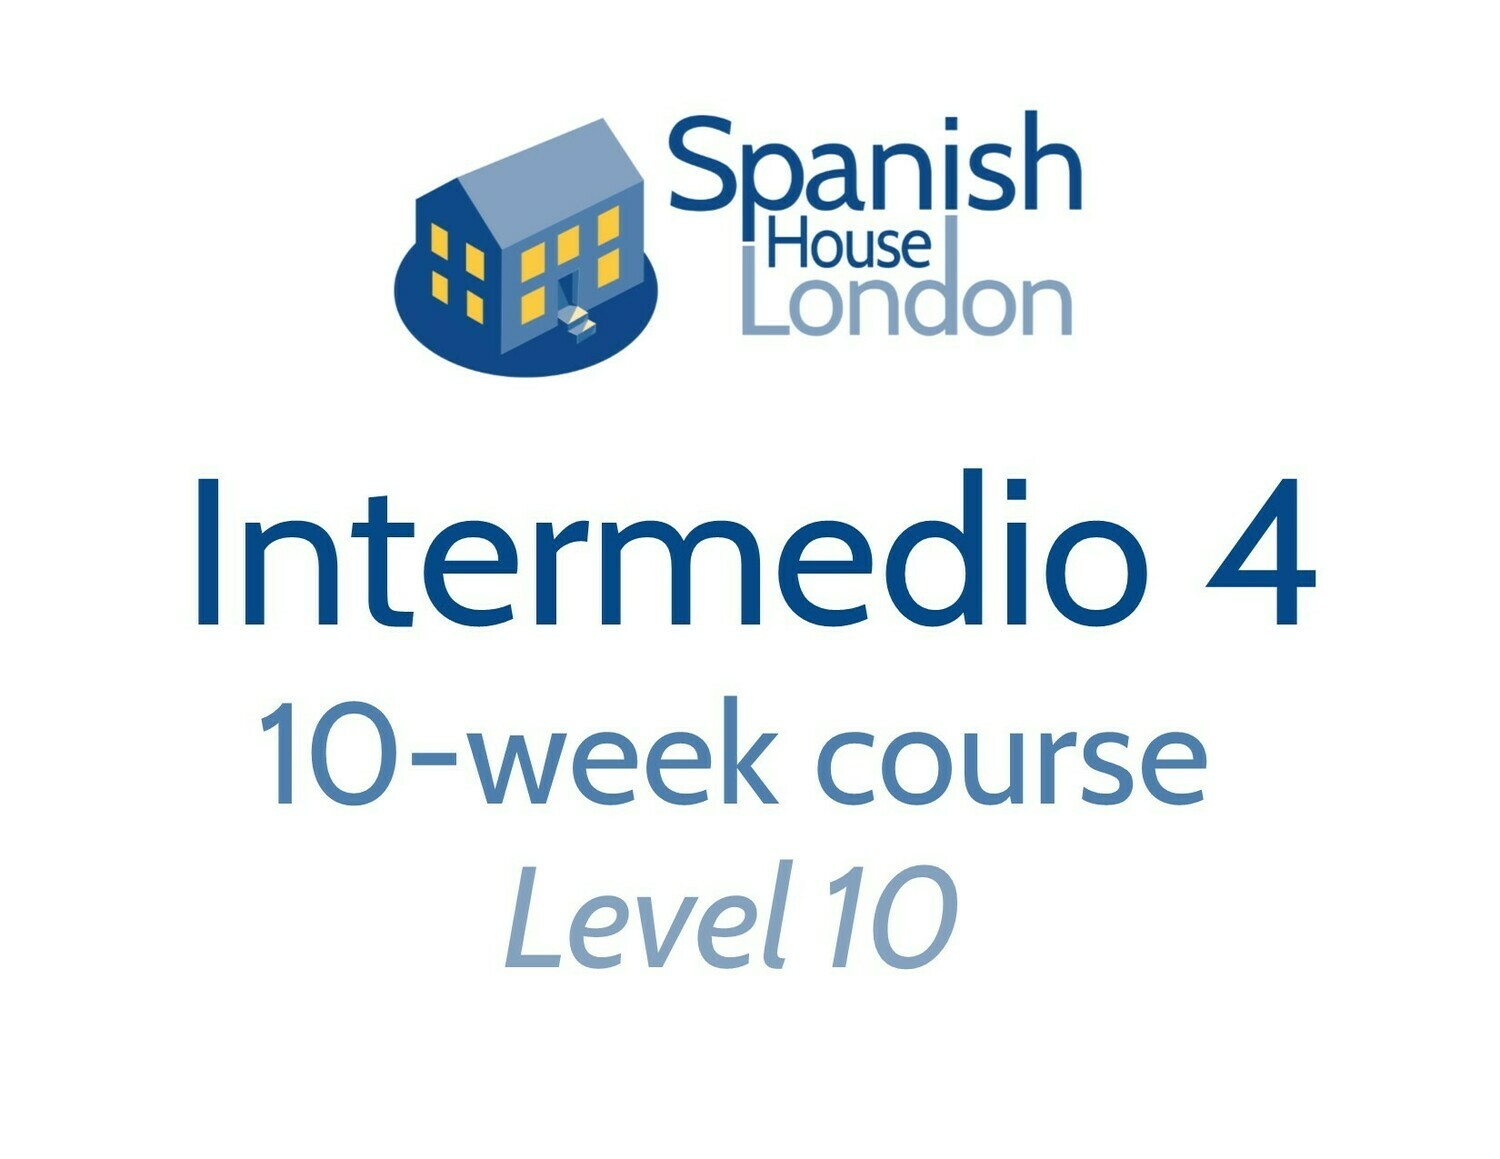 Intermedio 4 Course starting on 5th September at 6pm in Clapham North